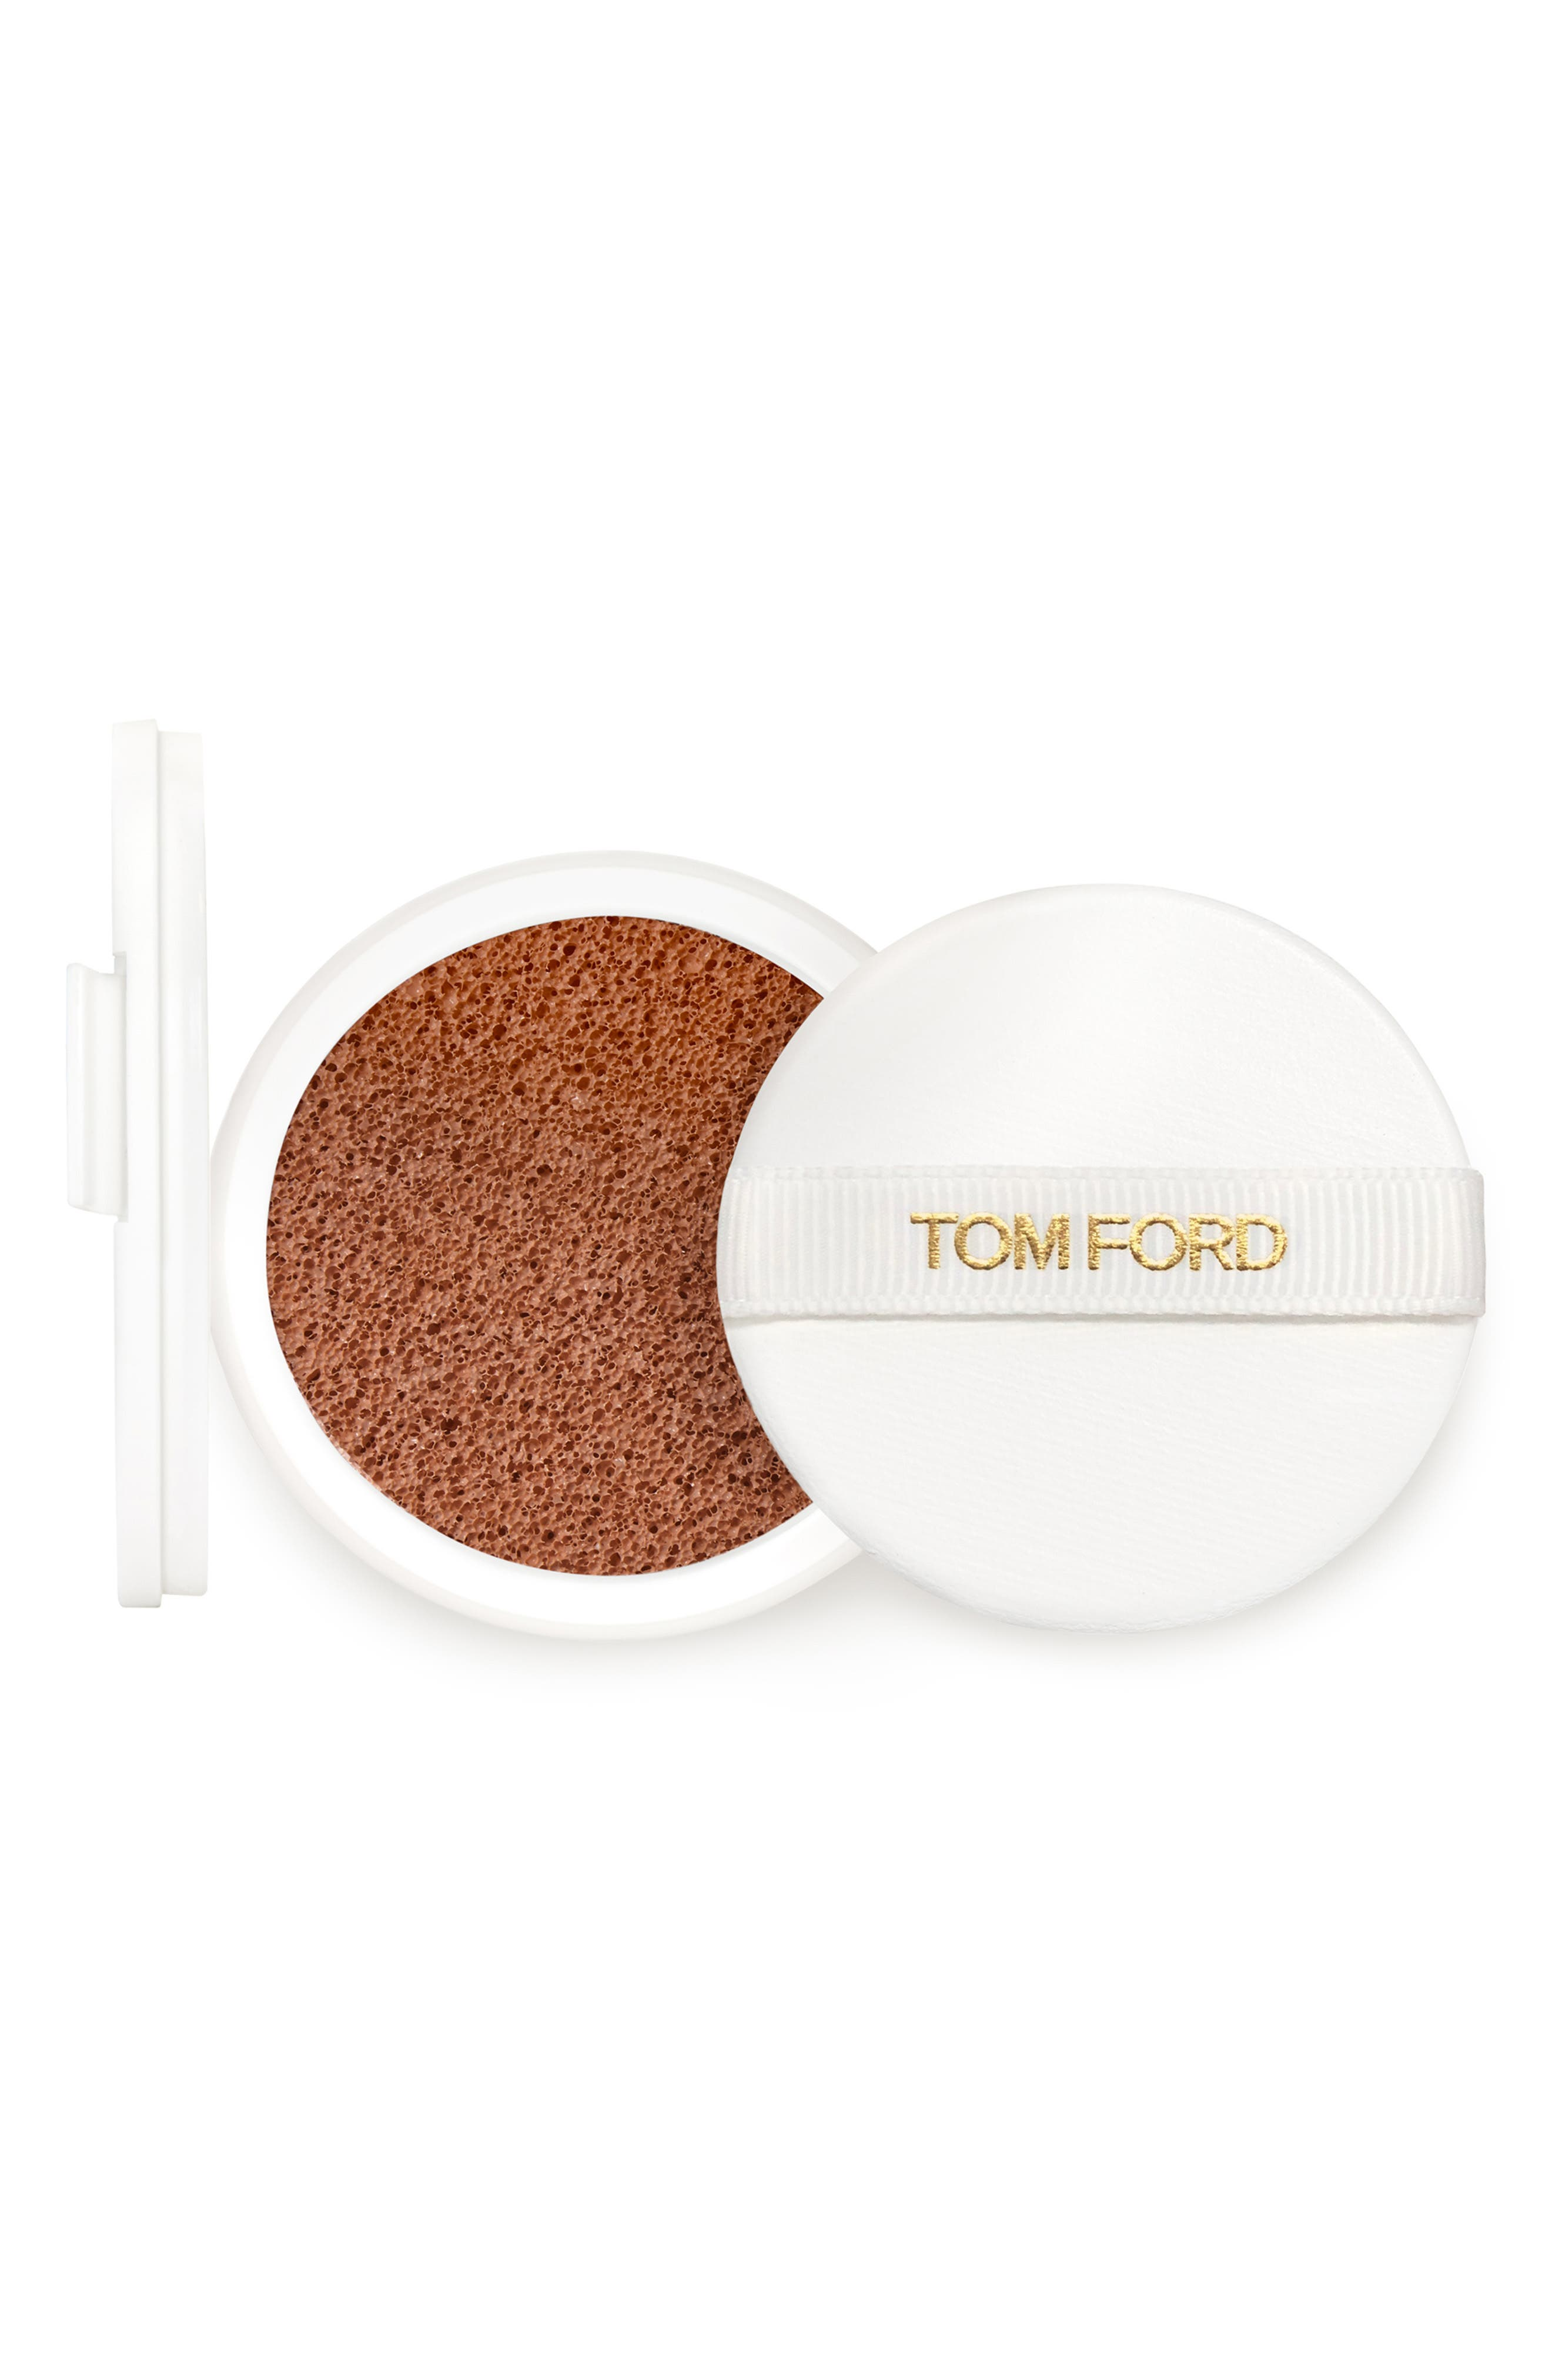 TOM FORD, Soleil Glow Up Foundation SPF 45 Hydrating Cushion Compact Refill, Main thumbnail 1, color, 9.0 DEEP BRONZE